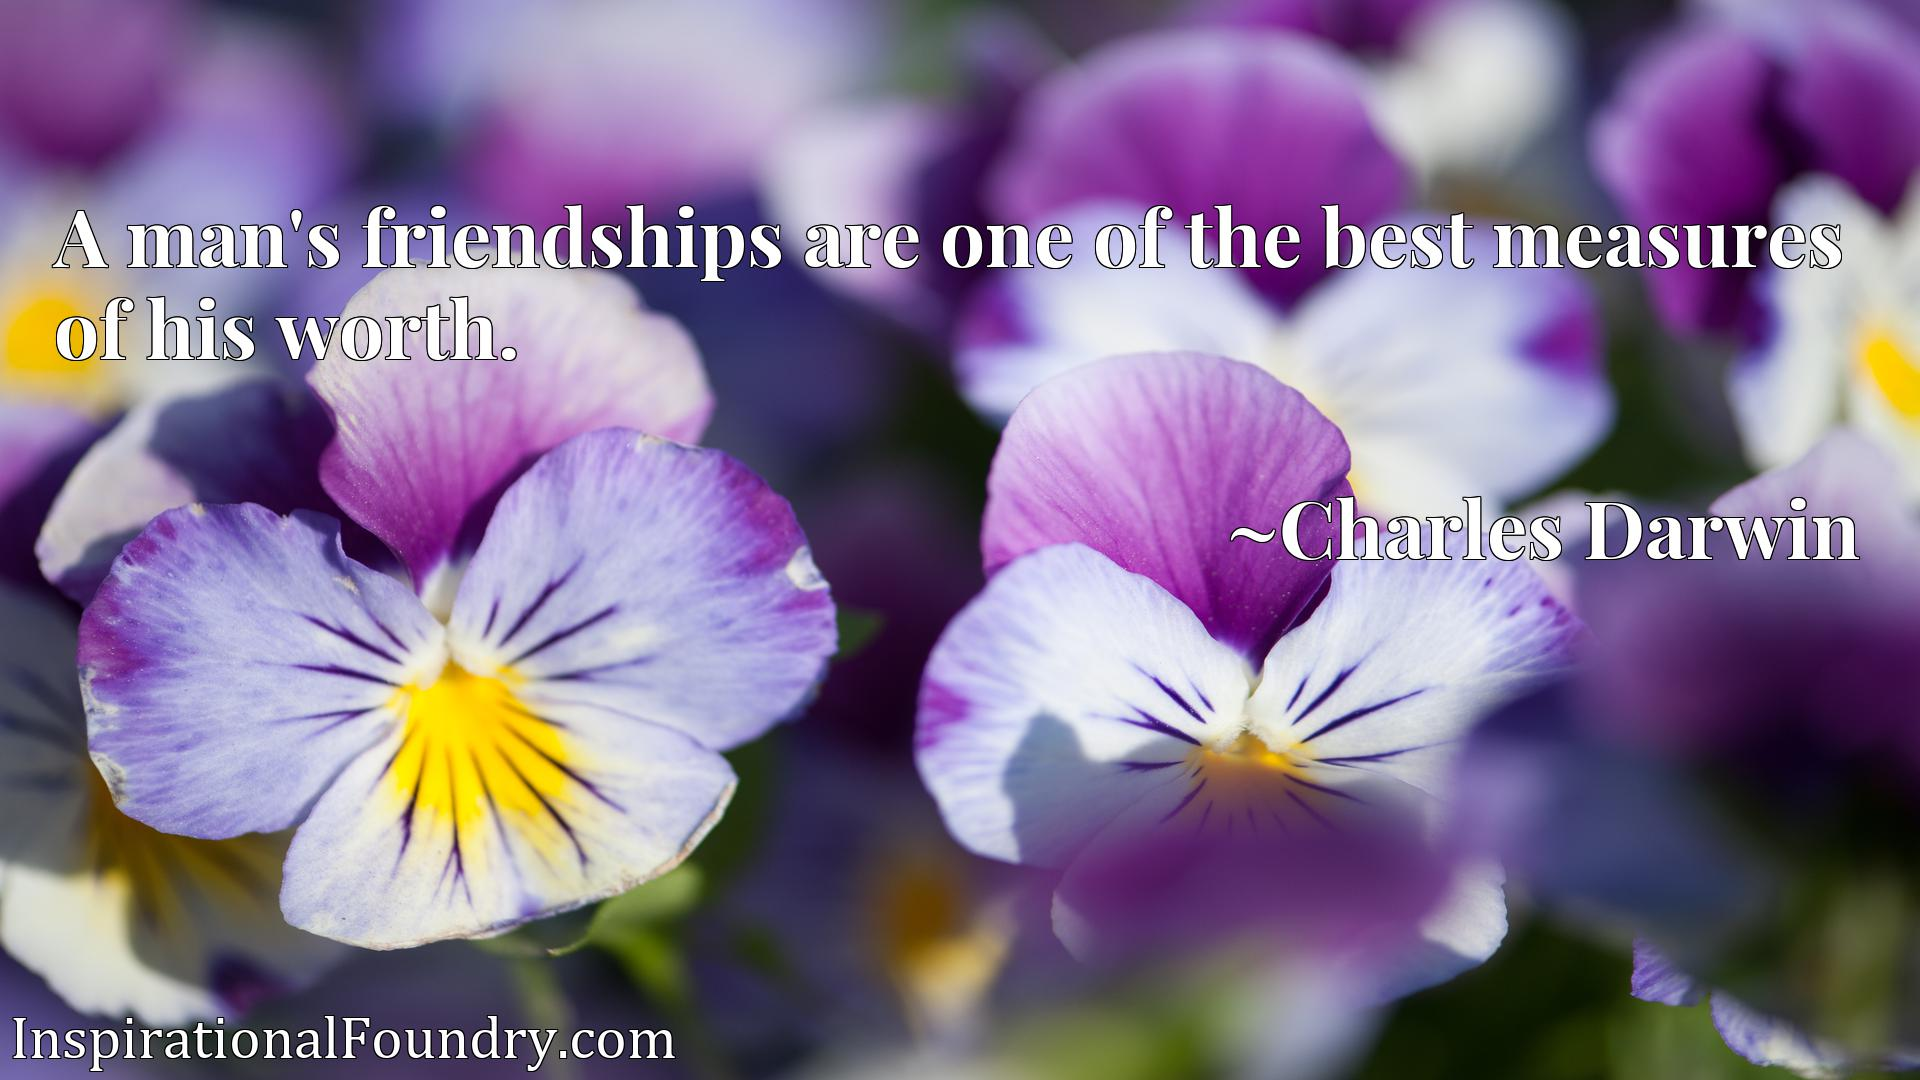 A man's friendships are one of the best measures of his worth.